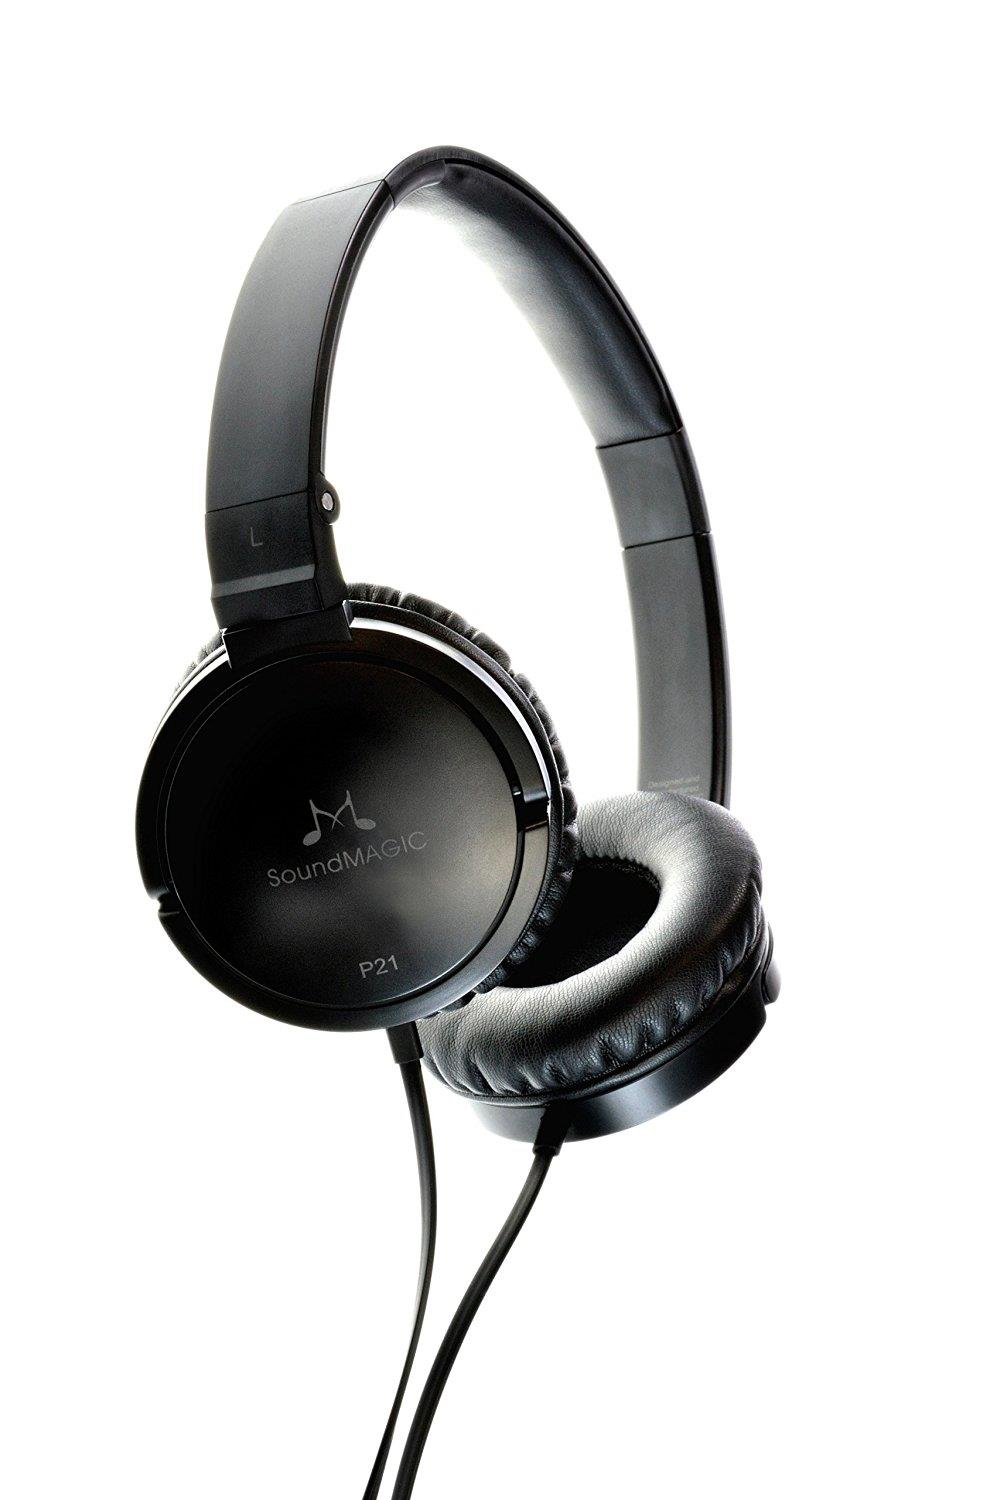 SoundMAGIC P21 Foldable Closed Back On Ear Headphones - Black/Grey